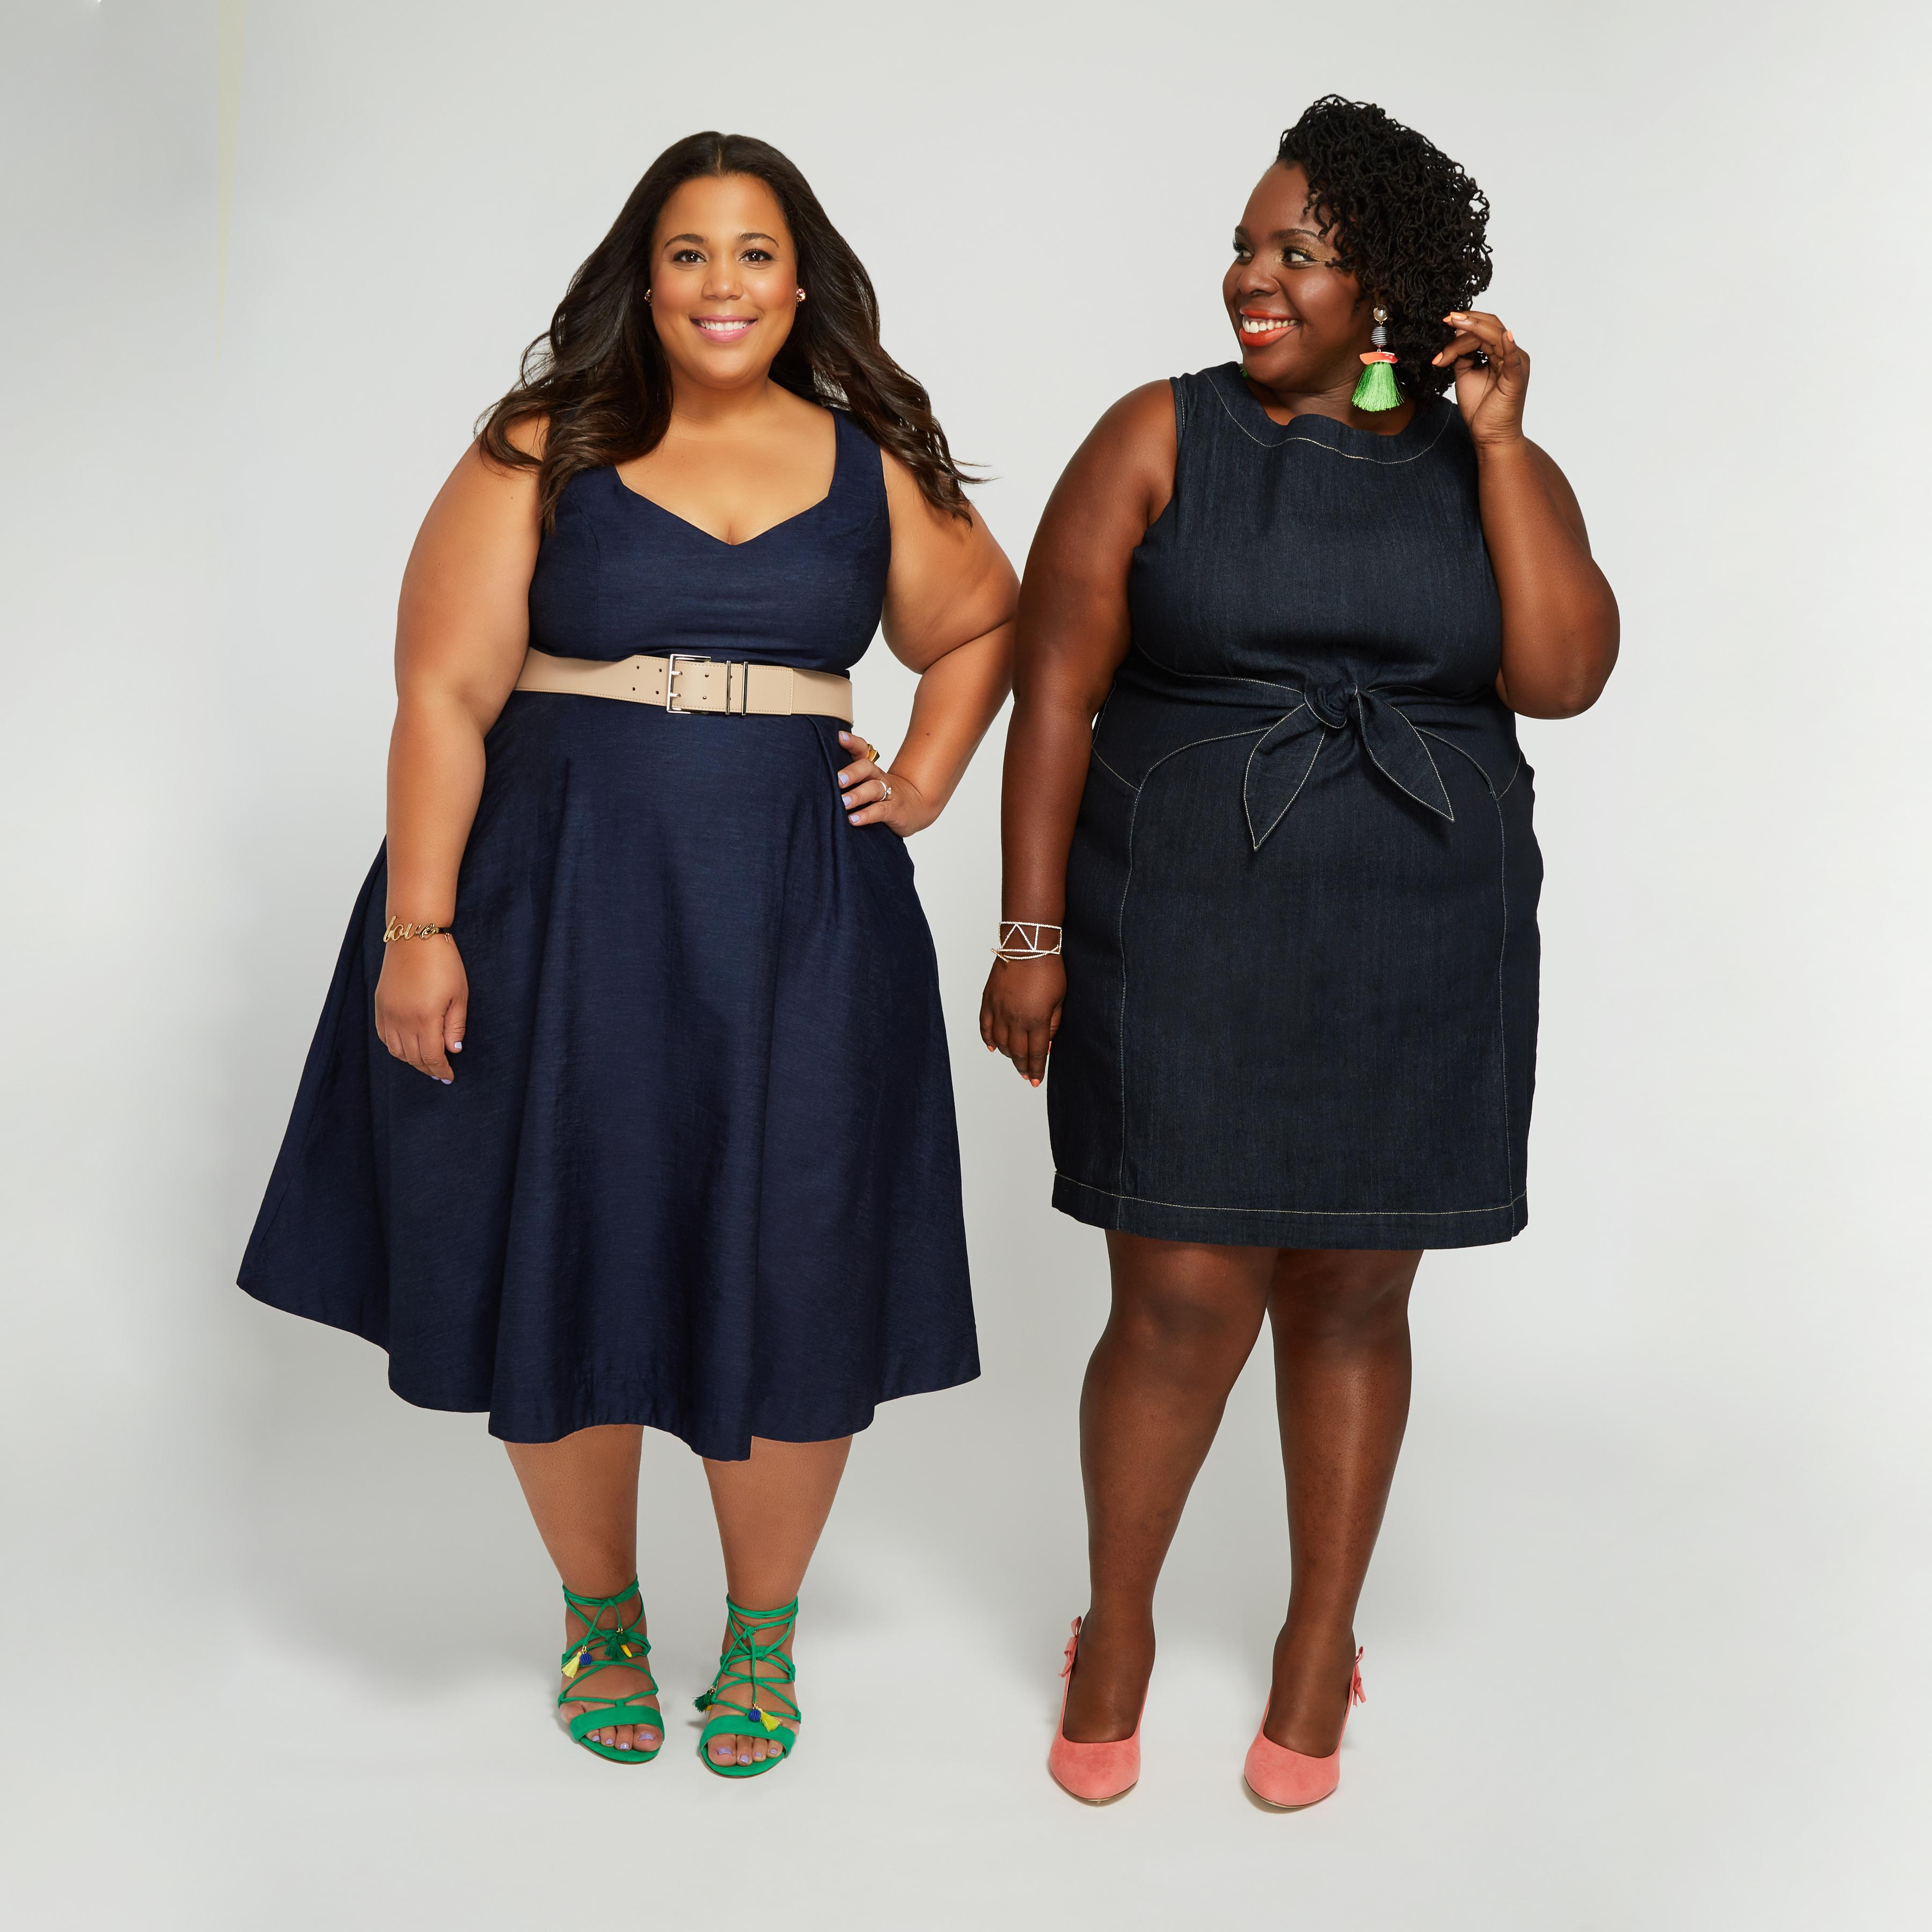 The women behind theCURVYcon.